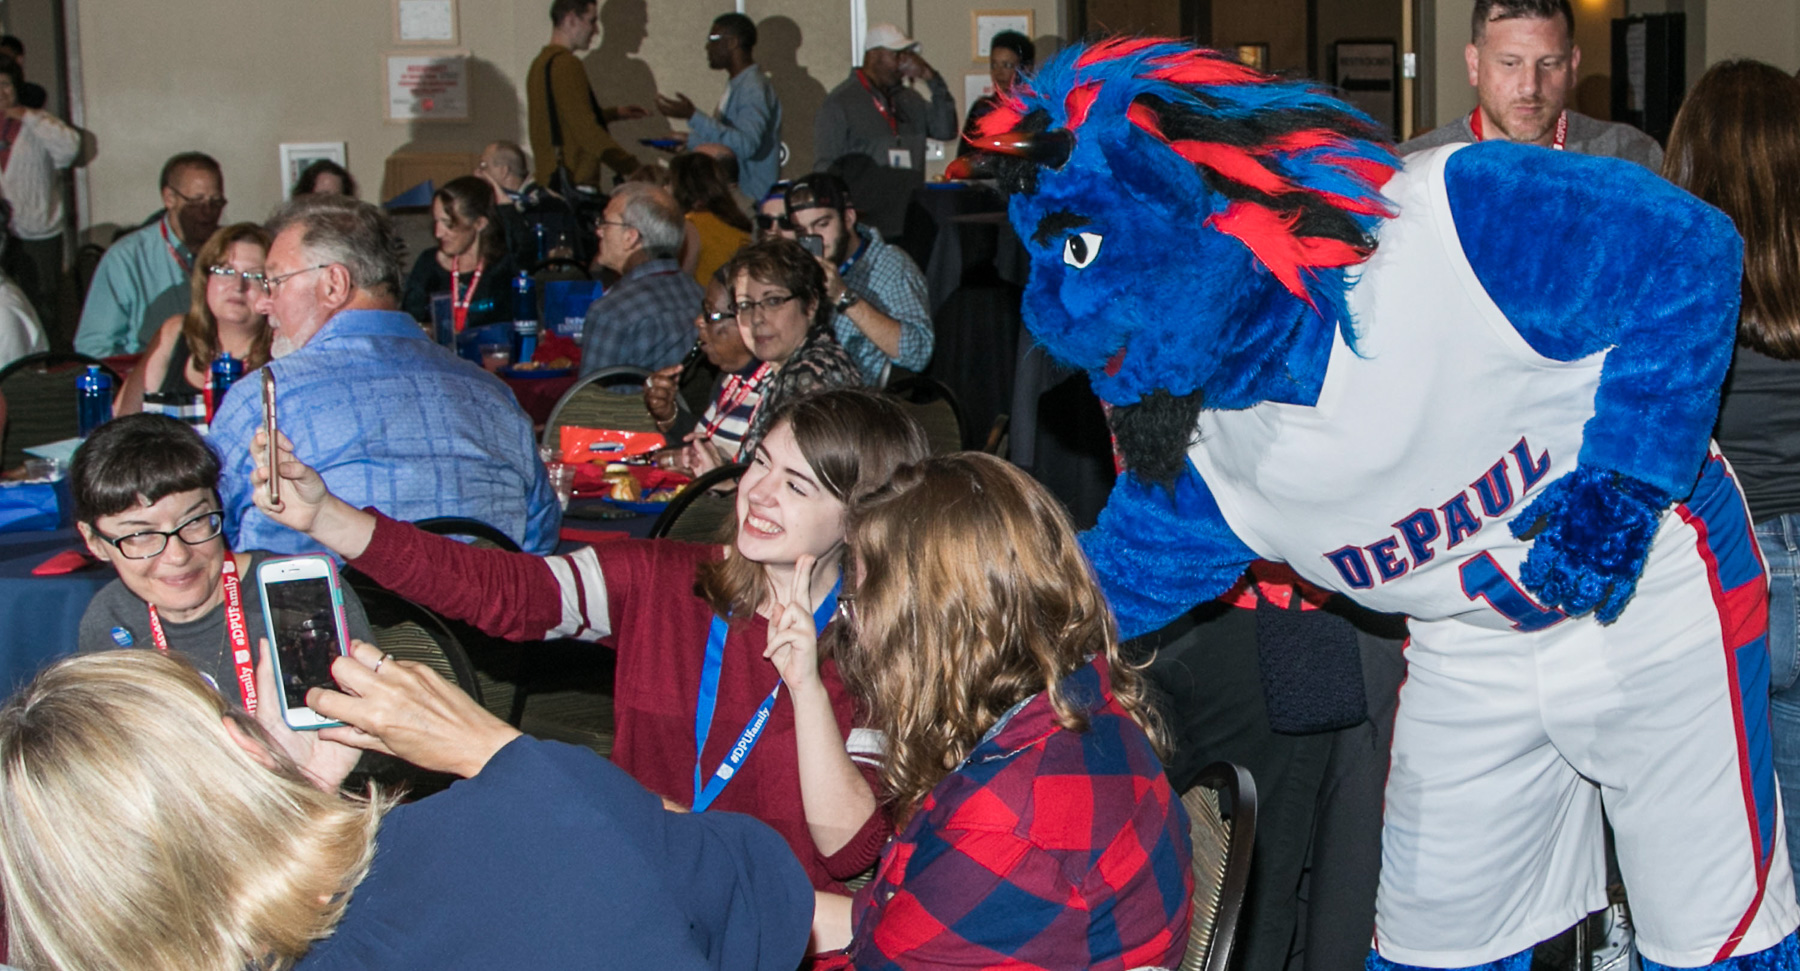 DIBS poses with guests at the Family Weekend Kickoff celebration. Student groups performed for the guests during a buffet dinner that started the weekend of festivities. (DePaul University/Jamie Moncrief)